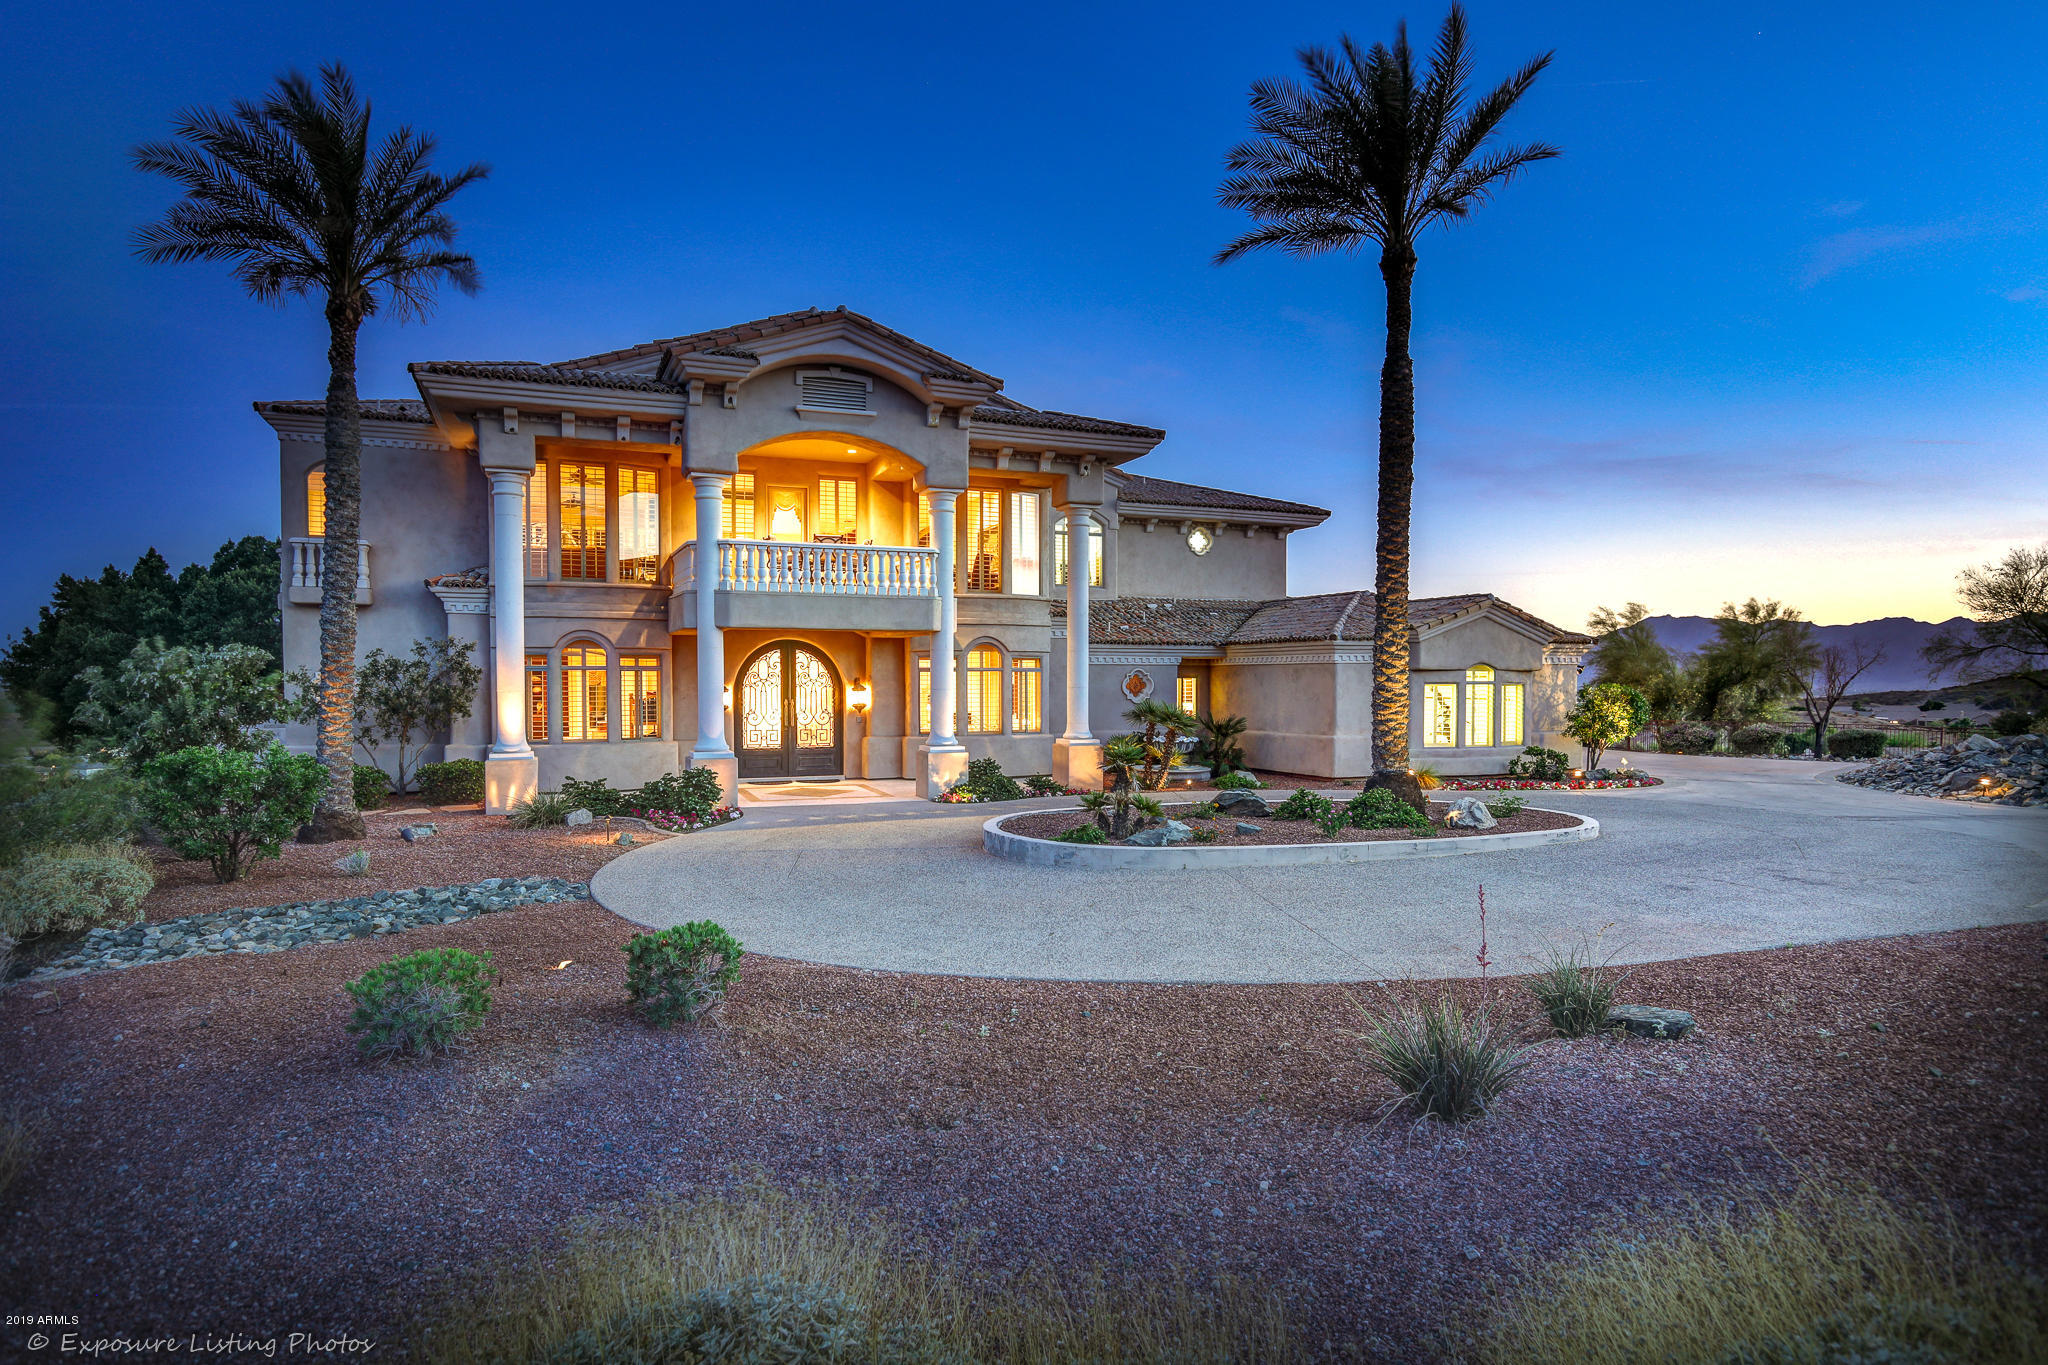 Astonishing Ahwatukee Homes For Sale In Gated Communities Interior Design Ideas Gentotryabchikinfo